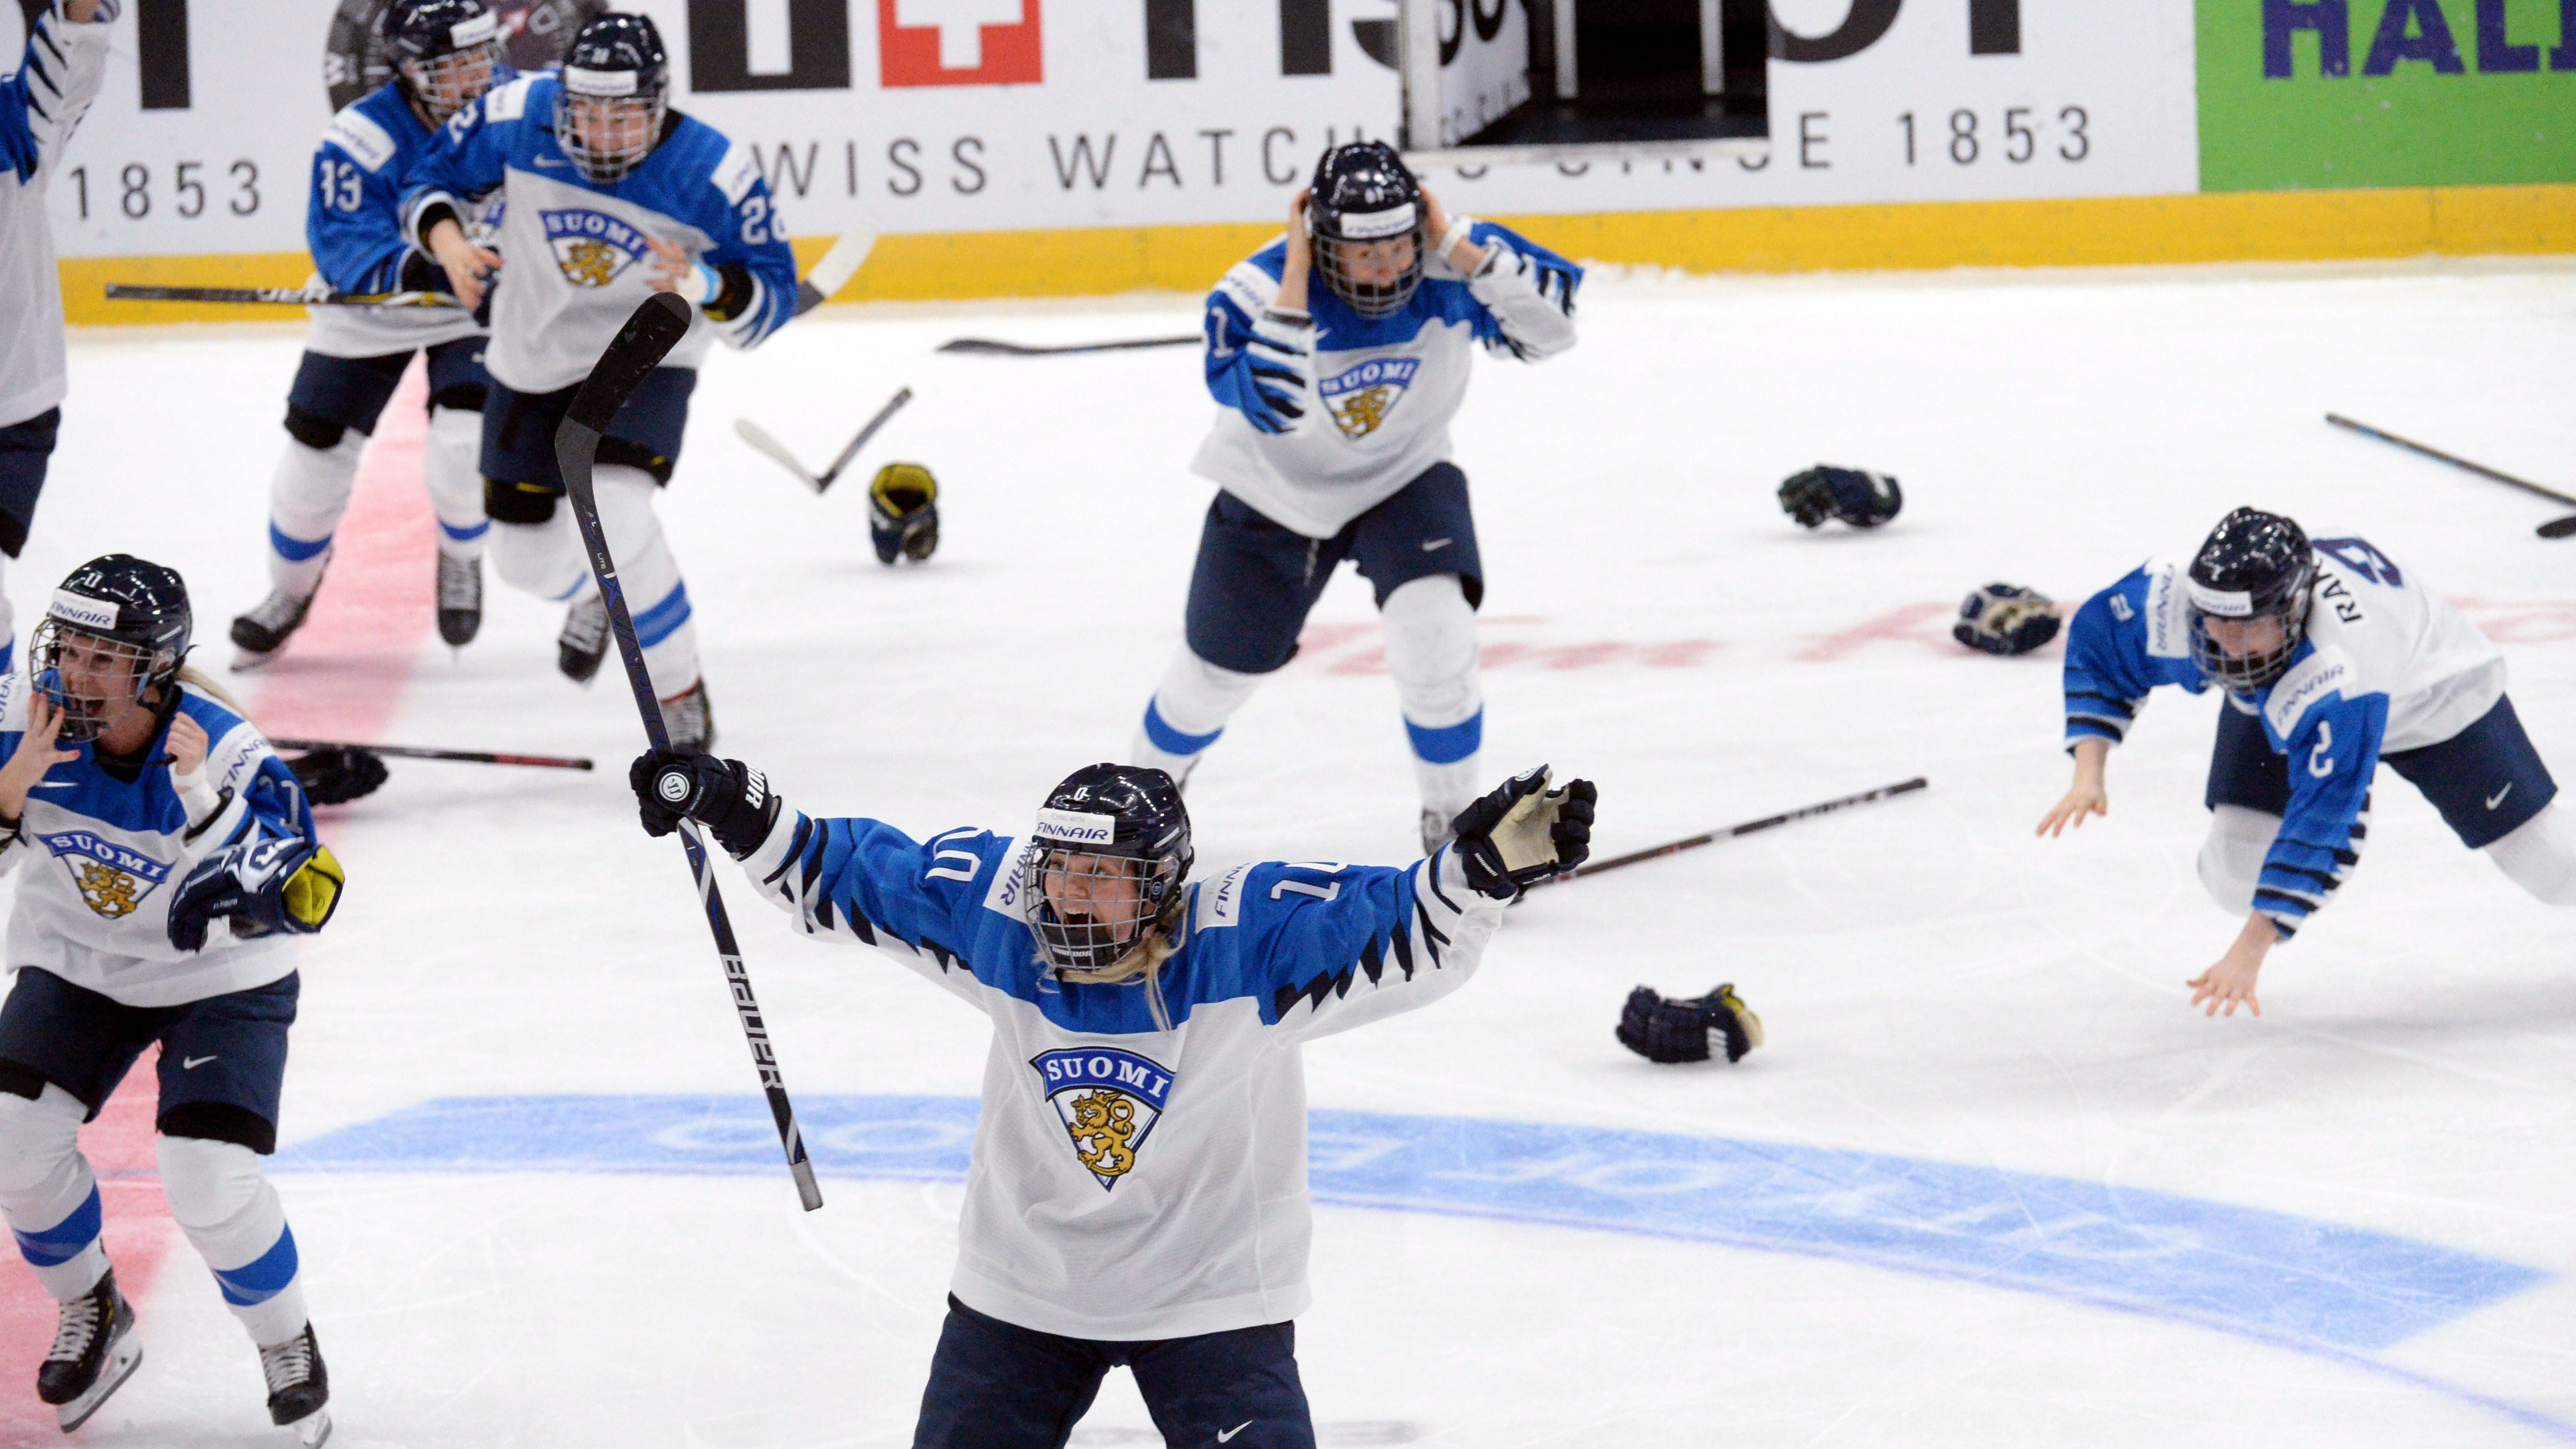 USA-Finland: IIHF World Championship ends in controversy (video)